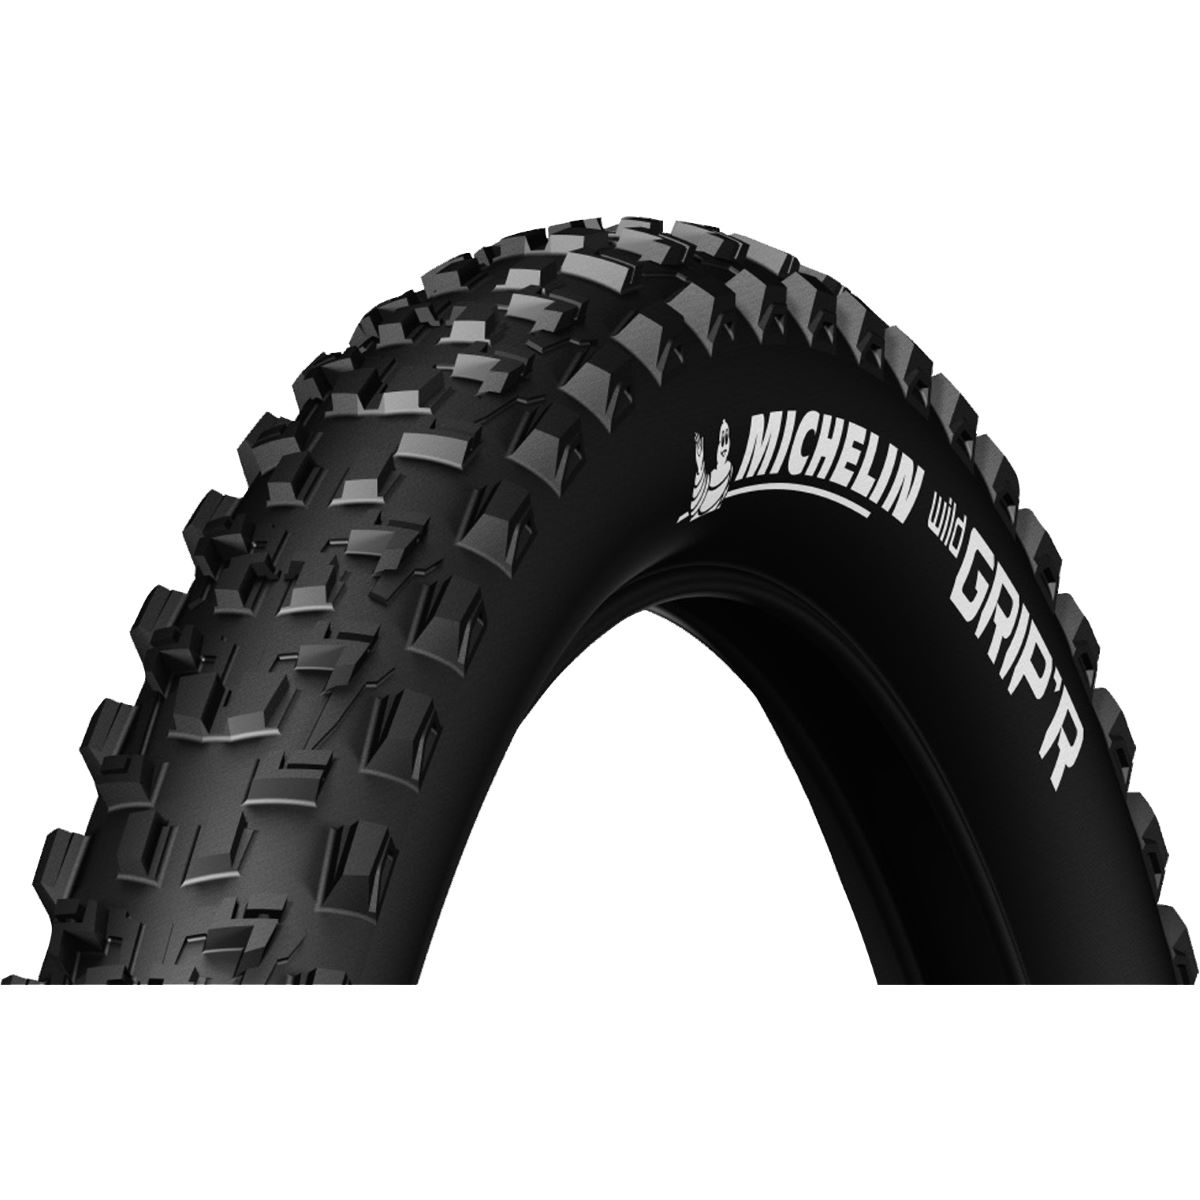 Pneu VTT Michelin Wild Grip'r Advanced Reinforced 29 pouces - 29 x 2.35 Noir Pneus VTT